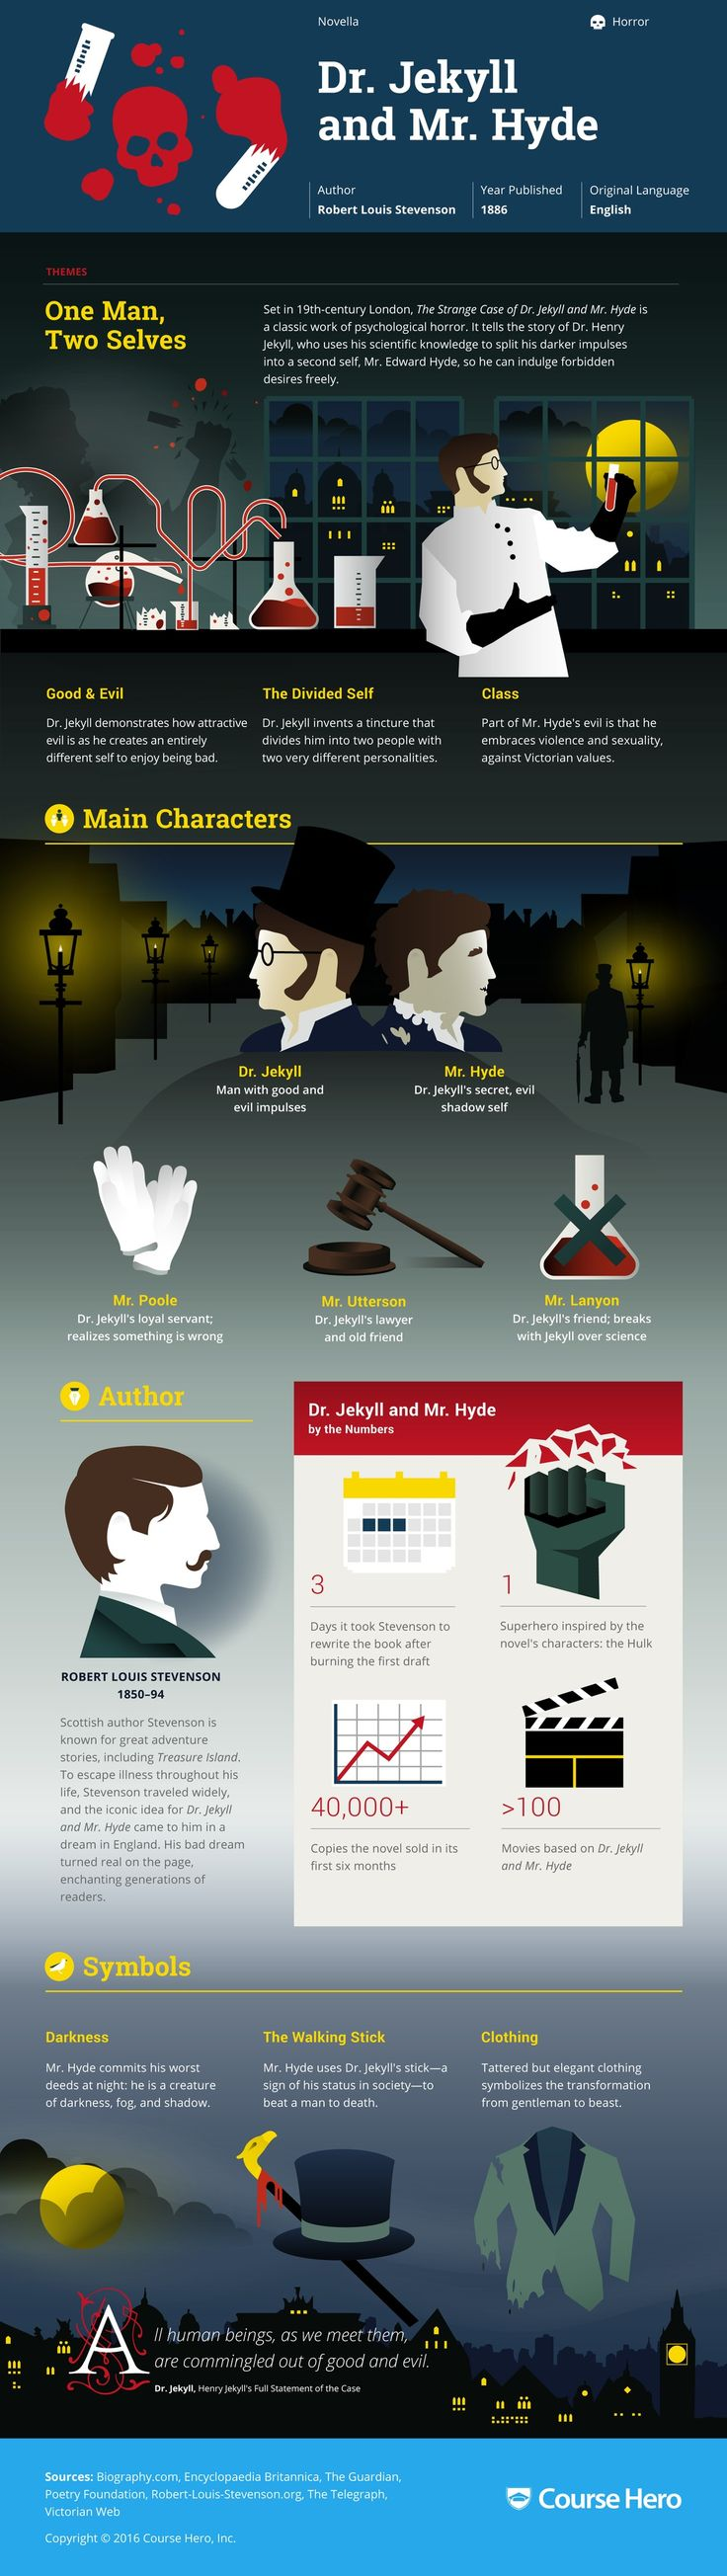 Dr. Jekyll and Mr. Hyde Infographic | Course Hero